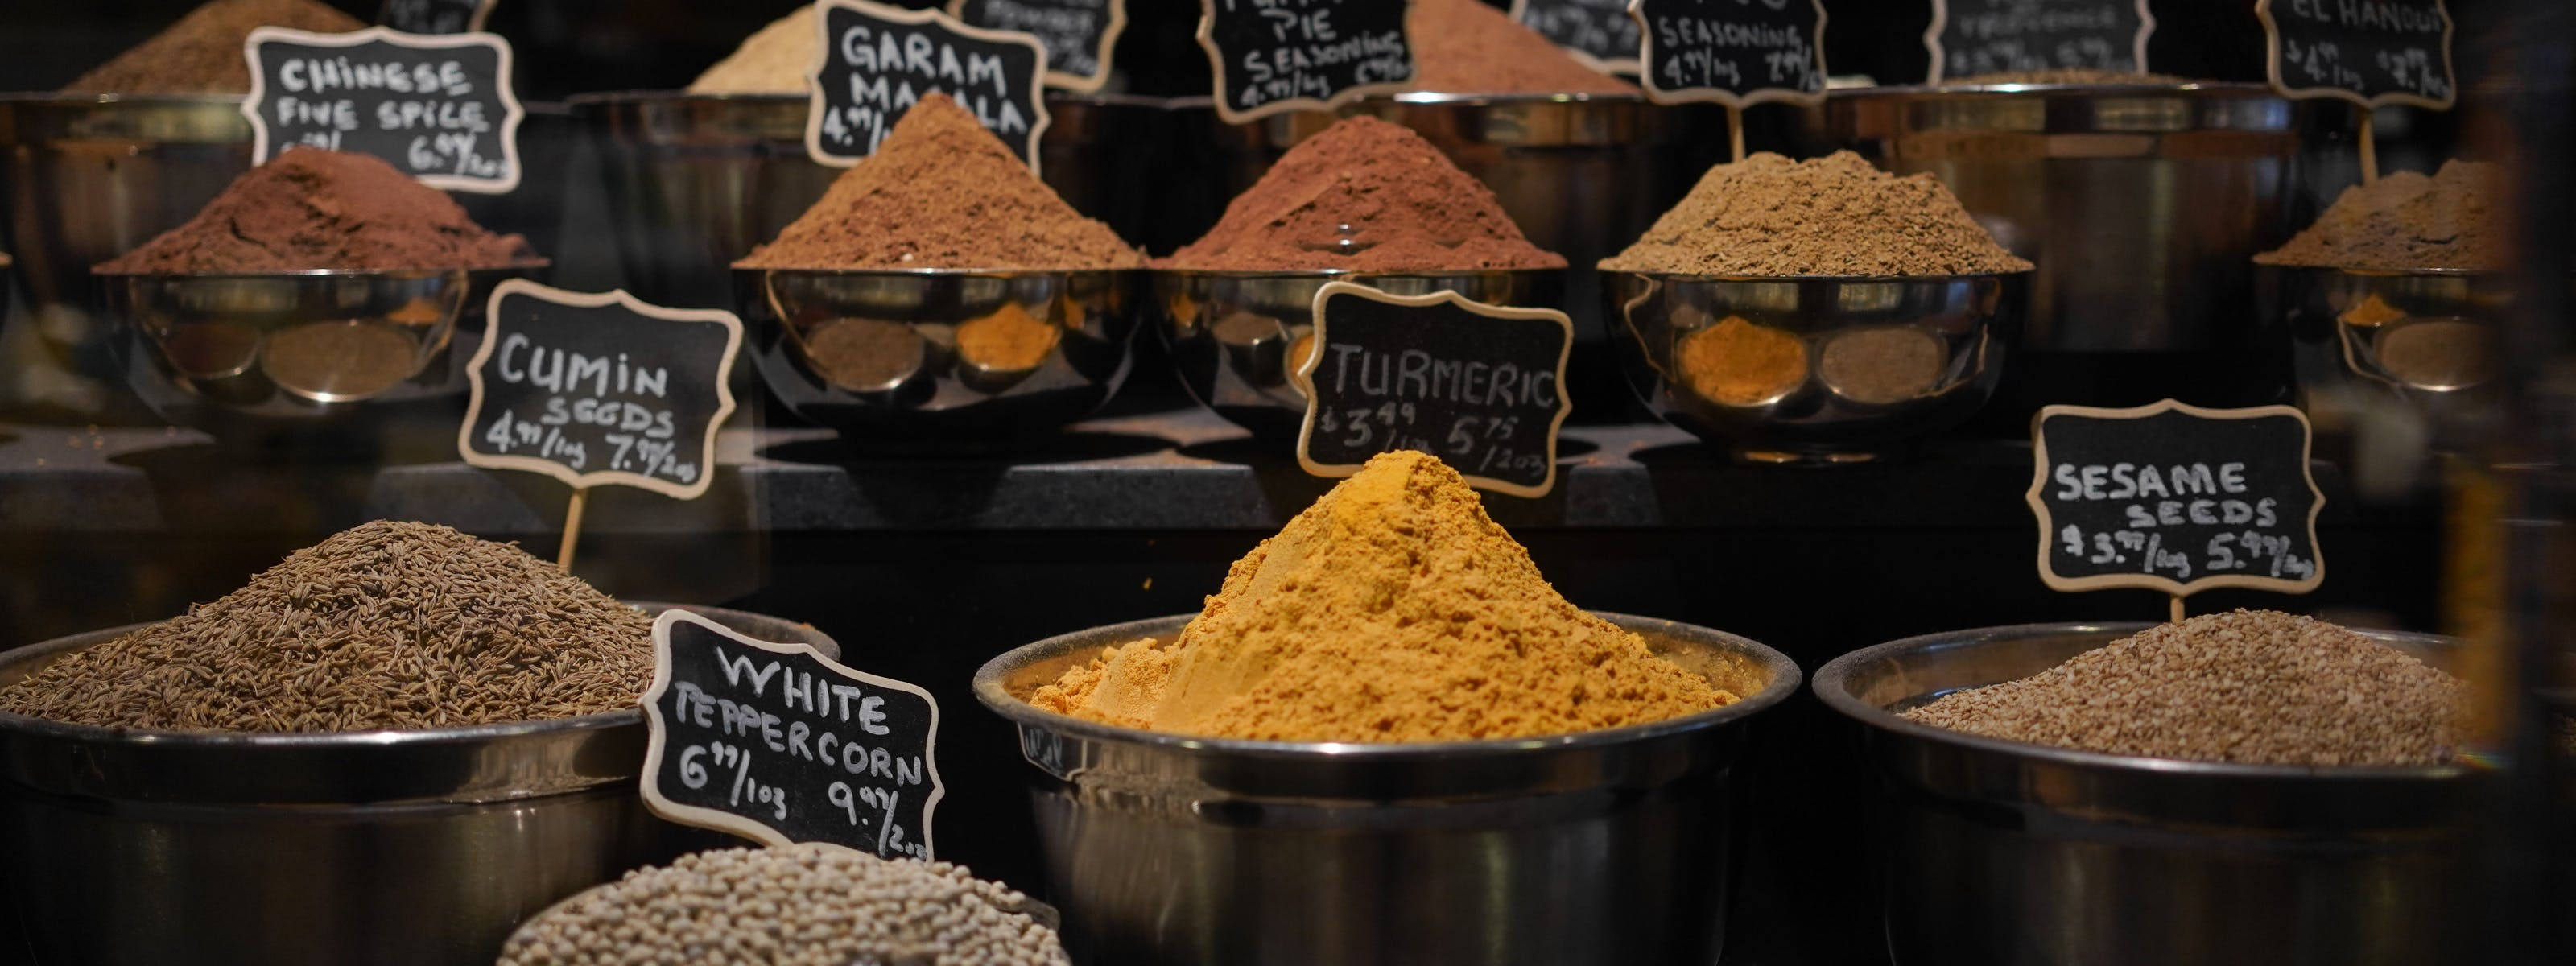 29 International & Specialty Grocery Stores In NYC - New York - The Infatuation